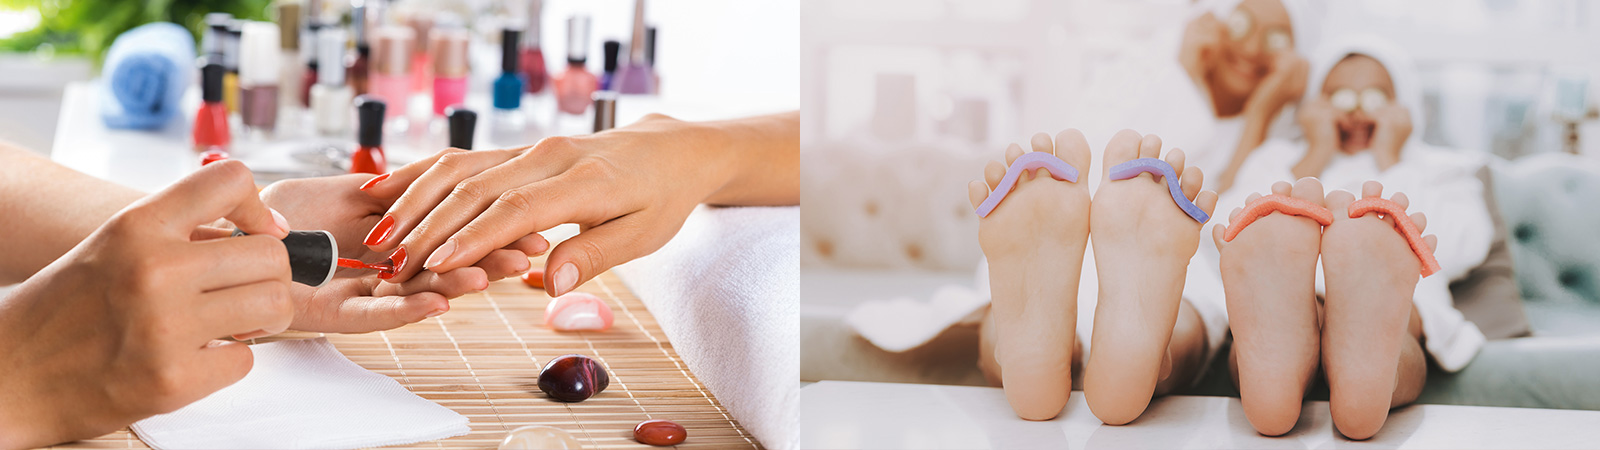 Nail Treatments In Chiswick, London, Chiswick Beautique